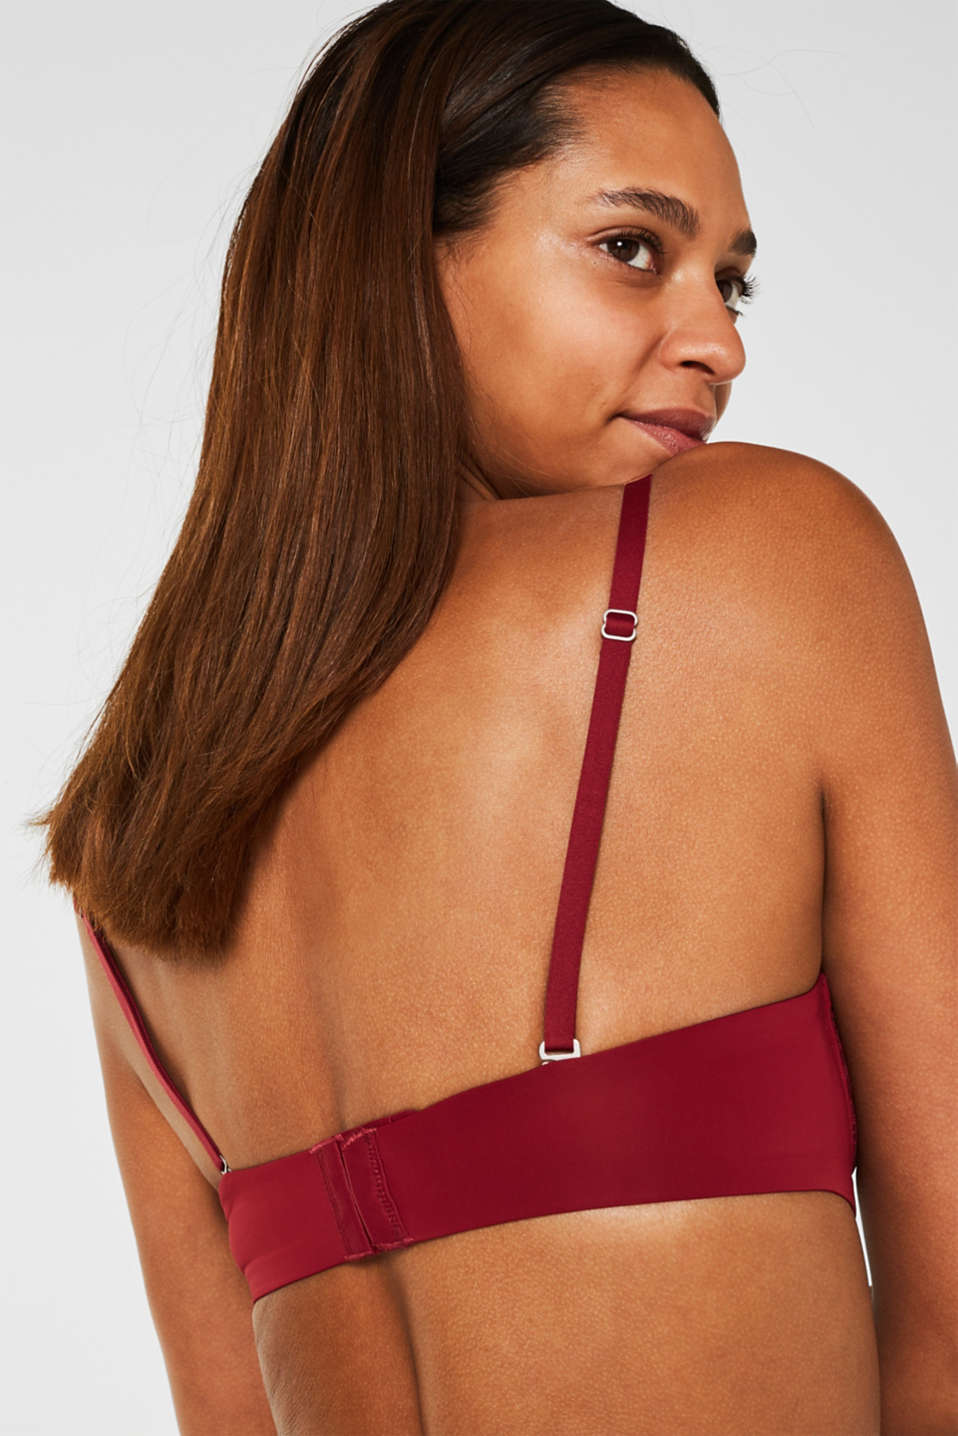 Padded underwire bra with detachable straps, BORDEAUX RED, detail image number 2